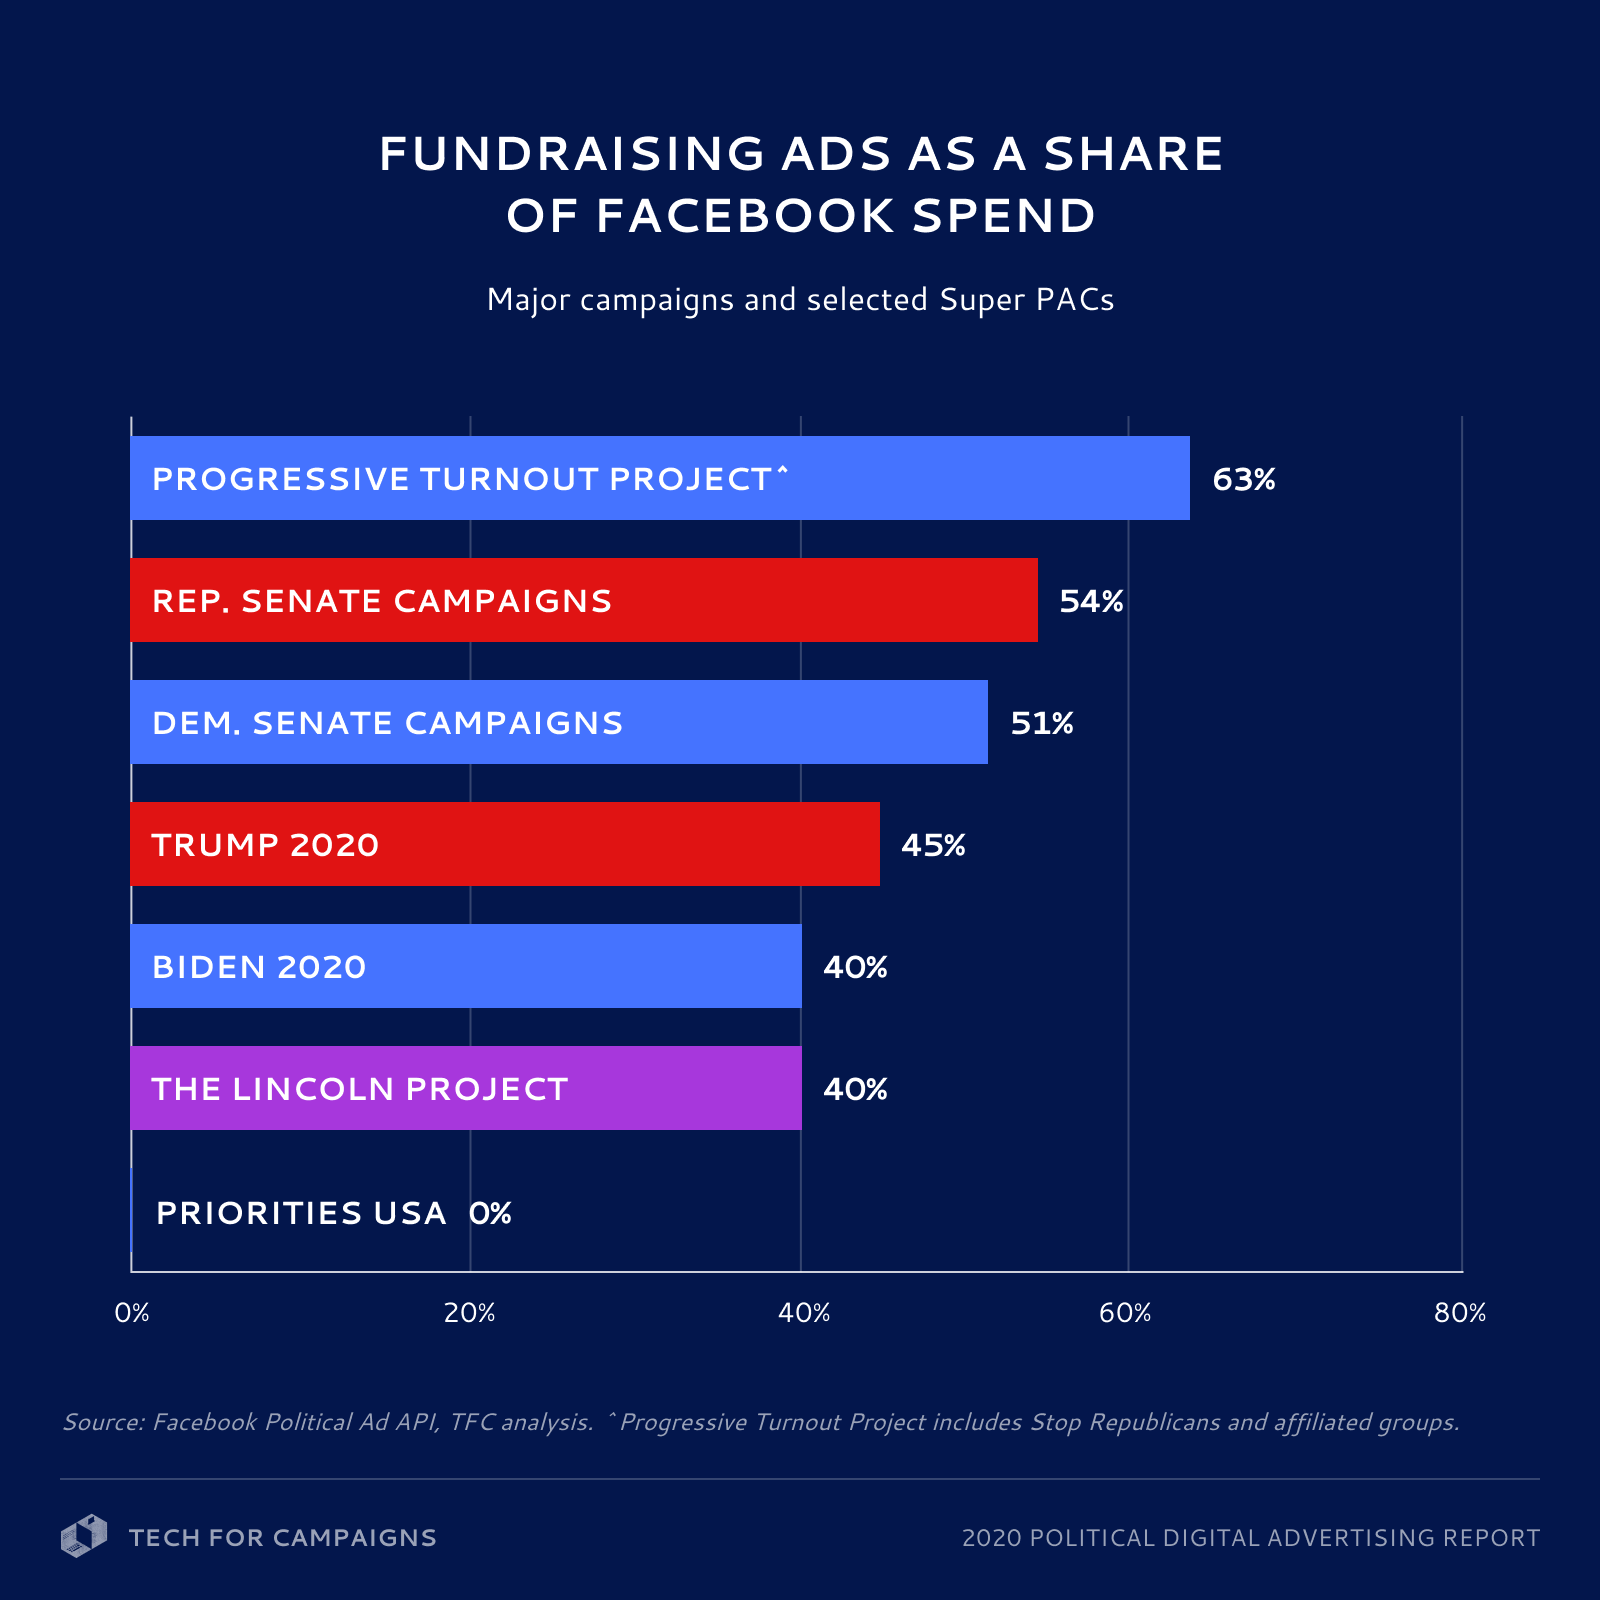 Many large advertisers spent more than 40% of their Facebook funds on fundraising ads.